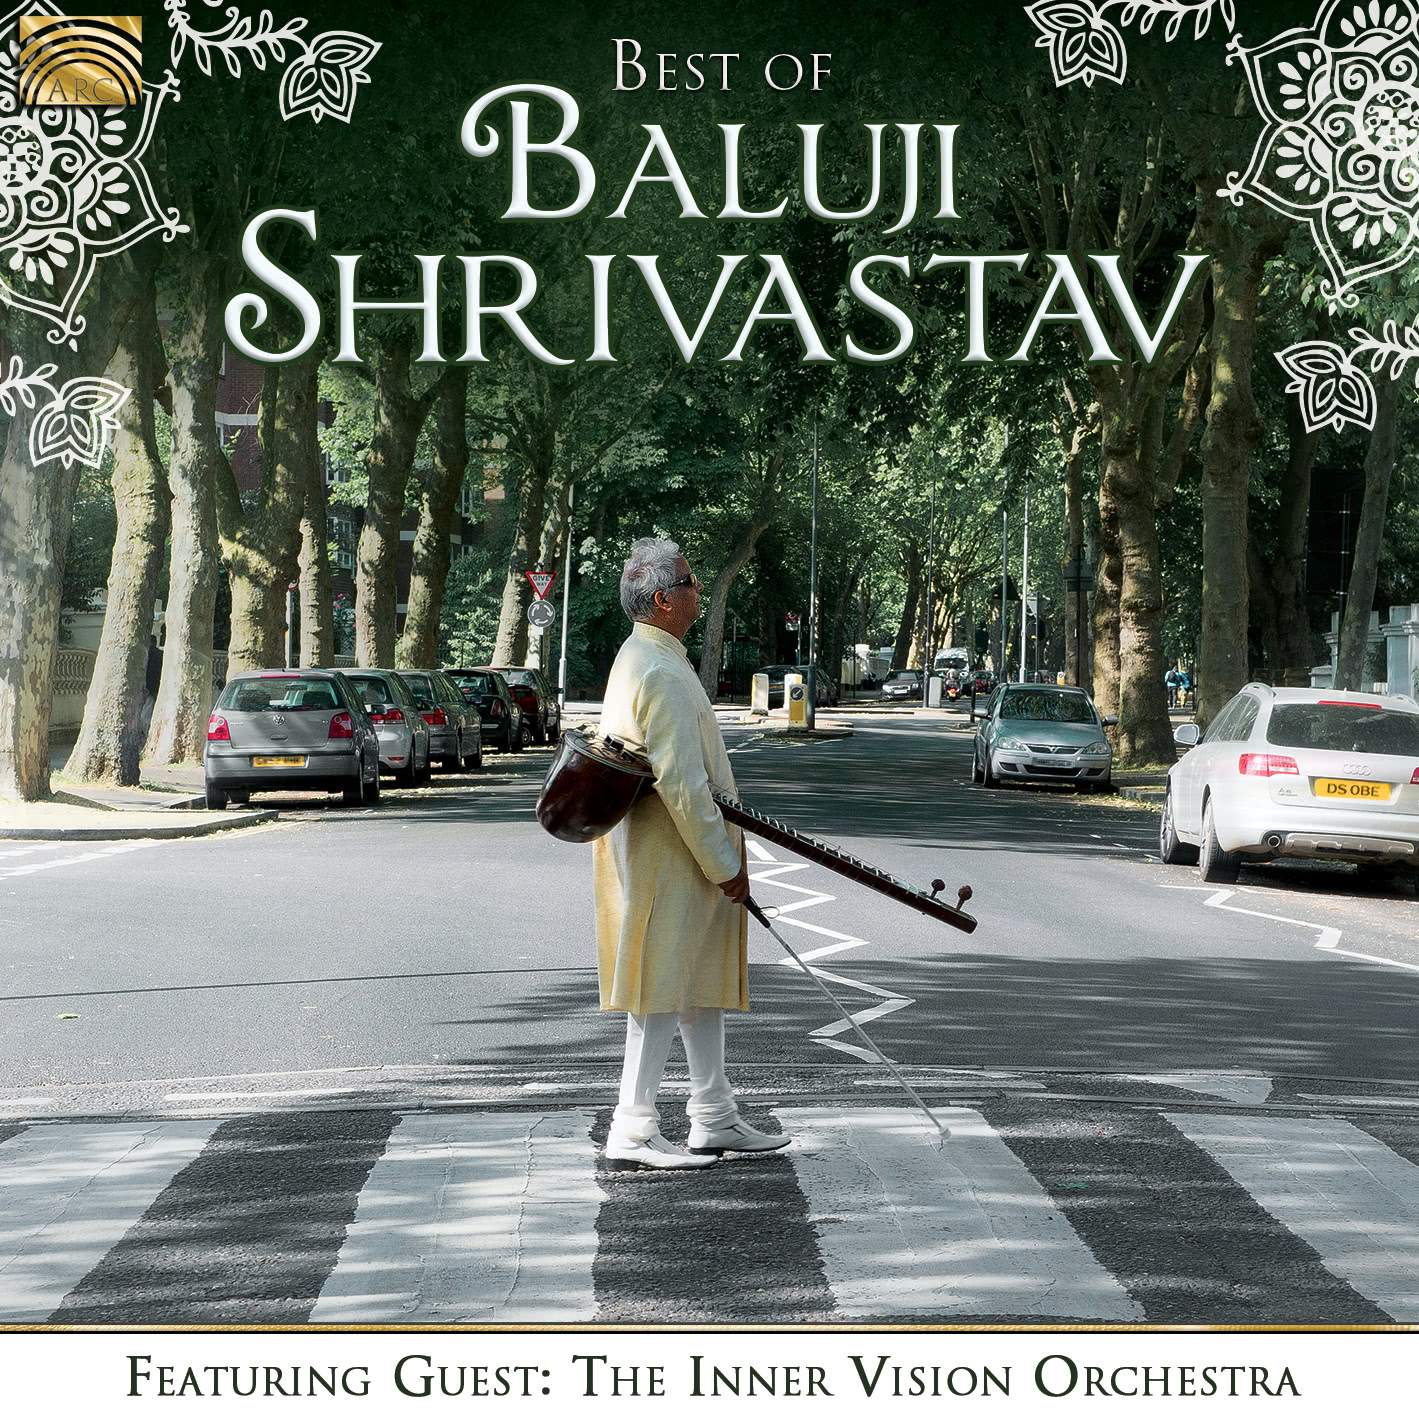 EUCD2695 Best of Baluji Shrivastav - Featuring Guest: The Inner Vision Orchestra